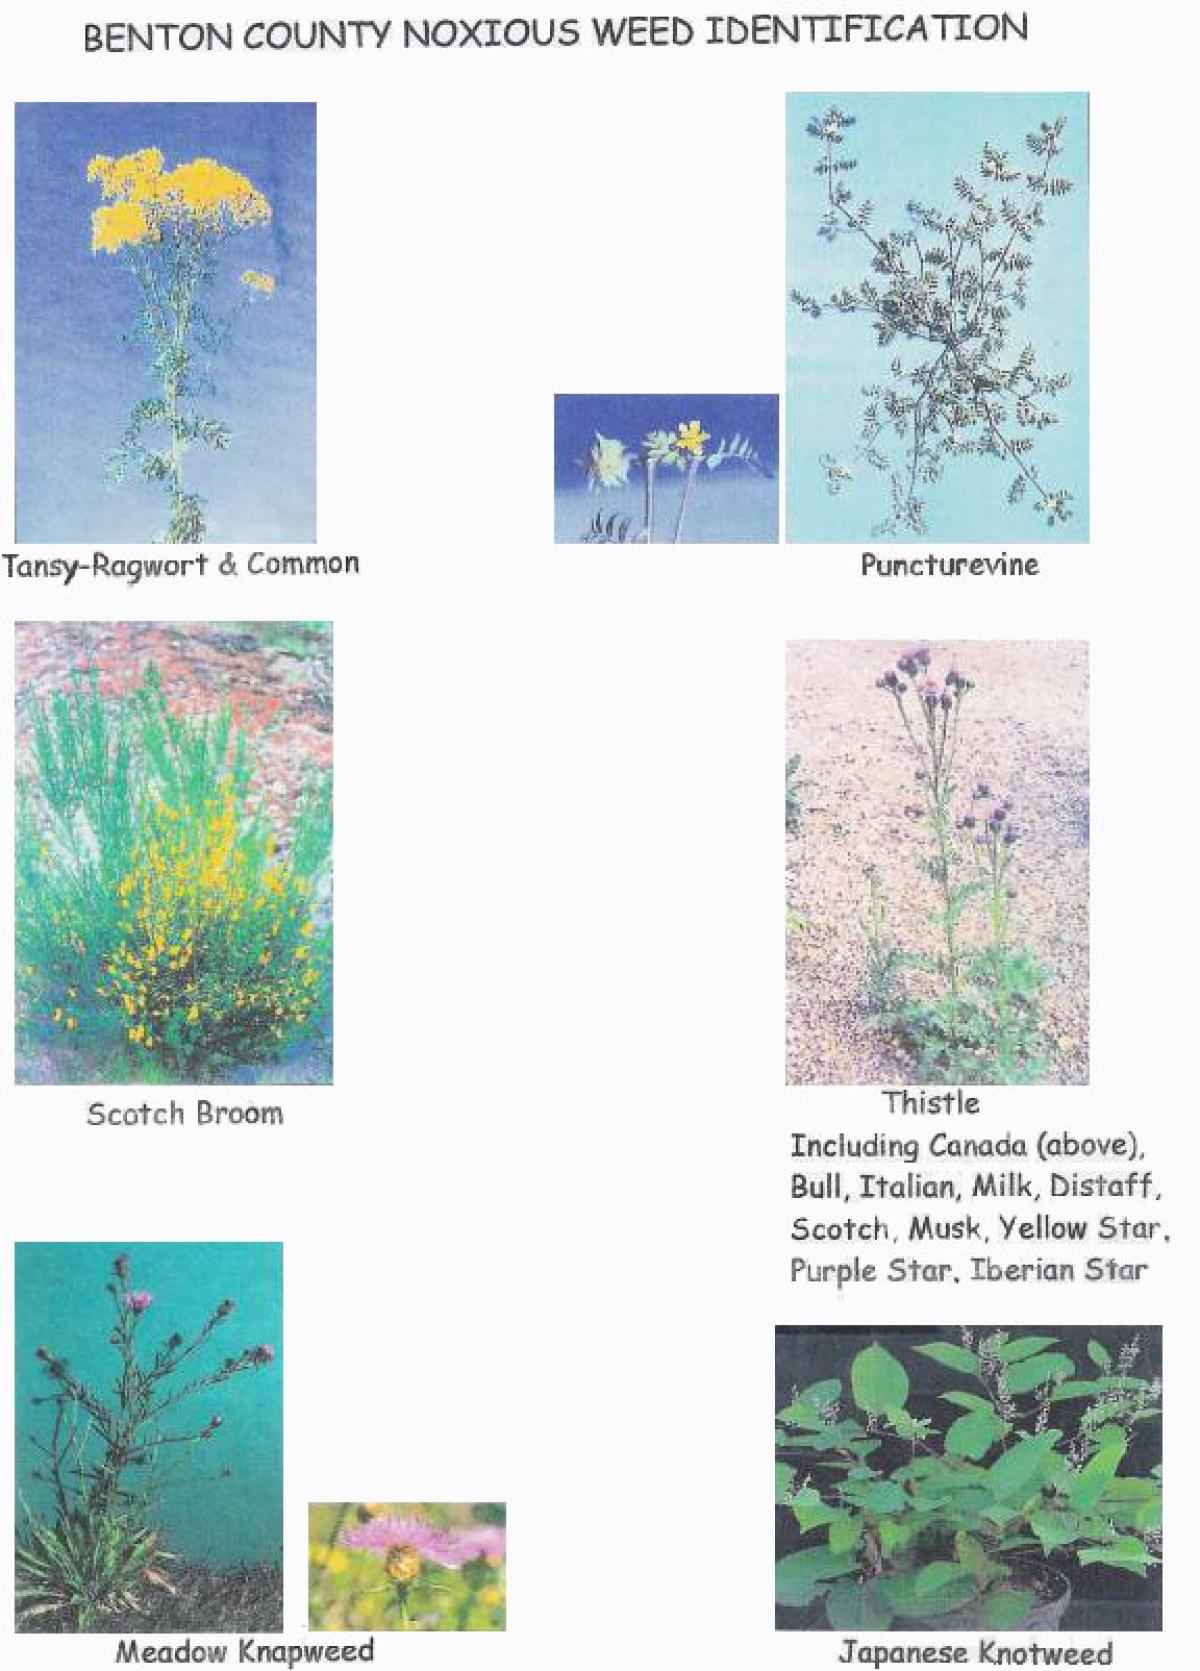 Benton County Noxious Weed Identification